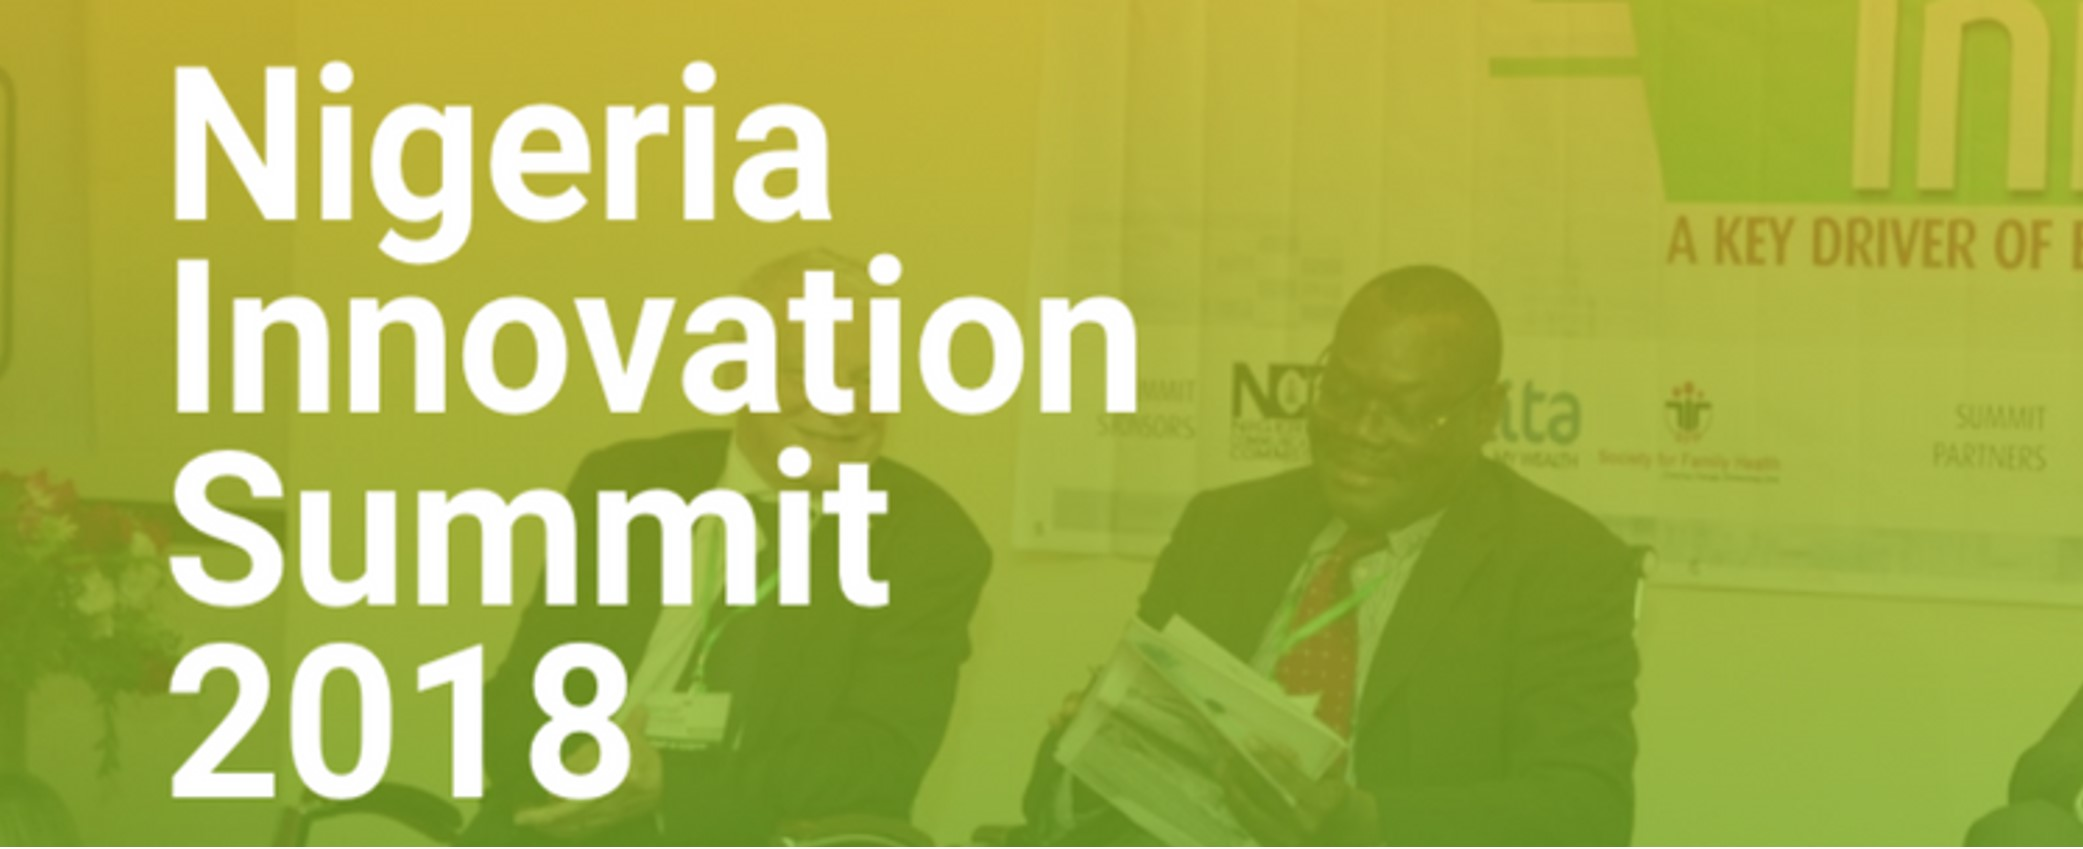 Nigeria Innovation Summit - Building a Culture of Innovation in Nigeria for Sustainable Economic Growth Movemeback African event cover image